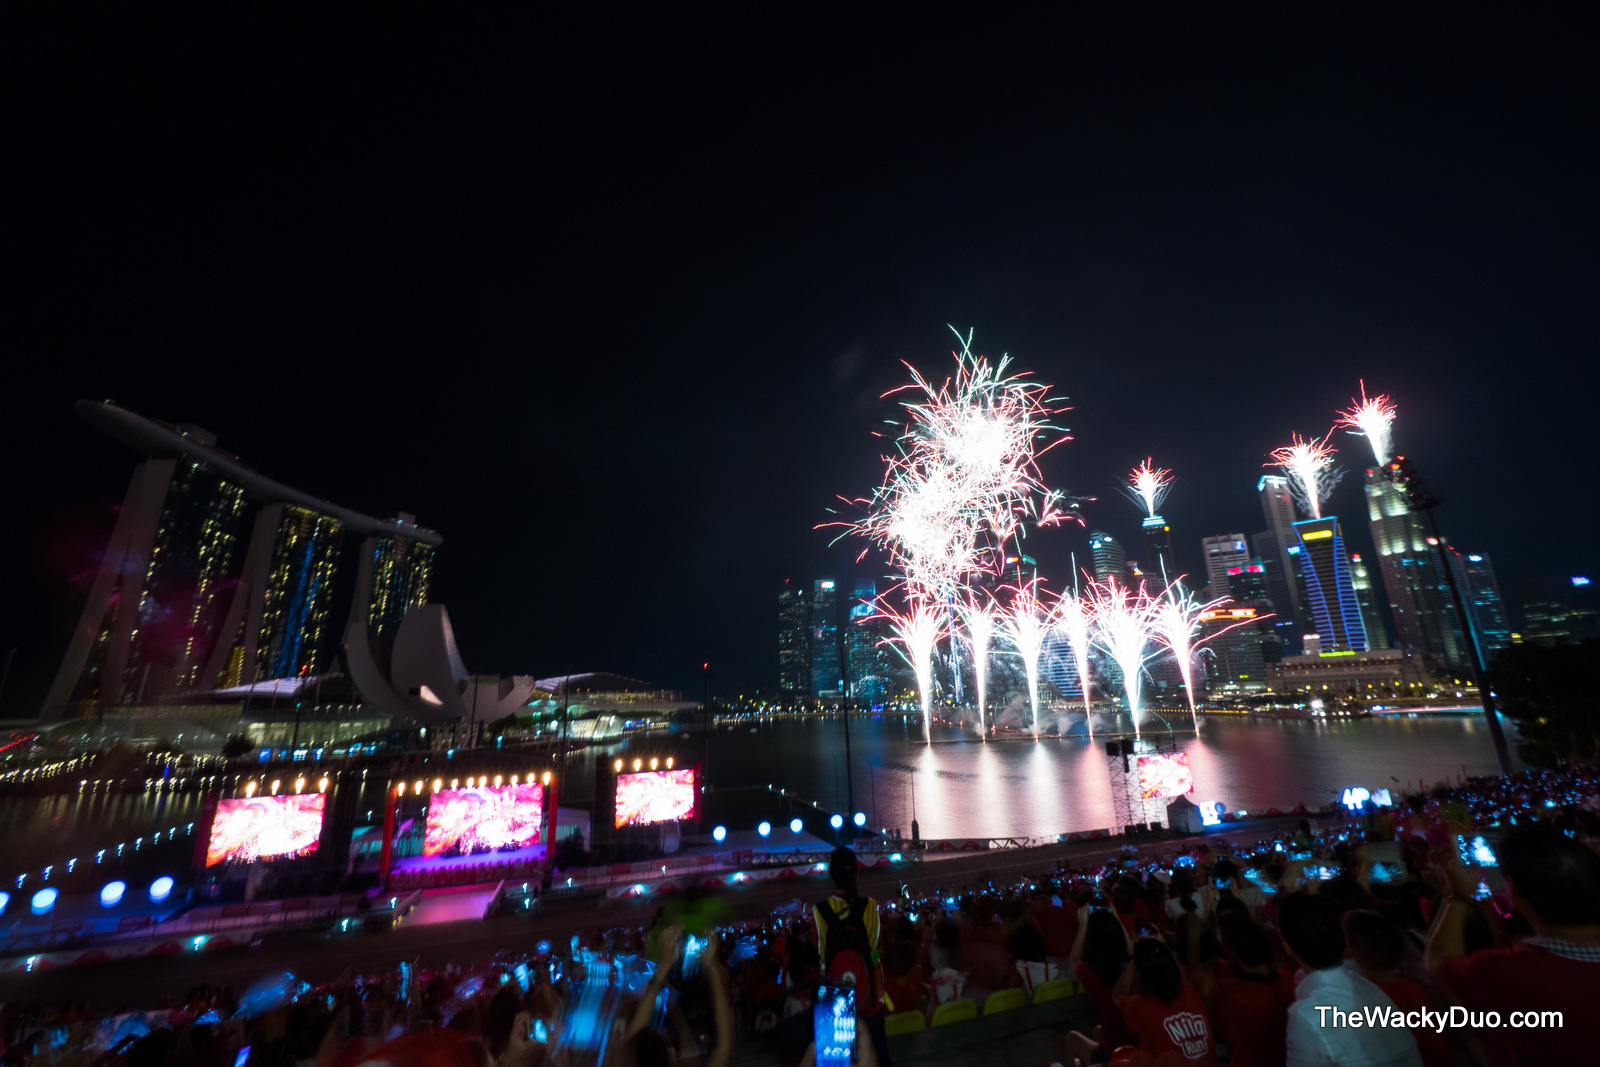 54 National Day deals and activities for 54th Singapore